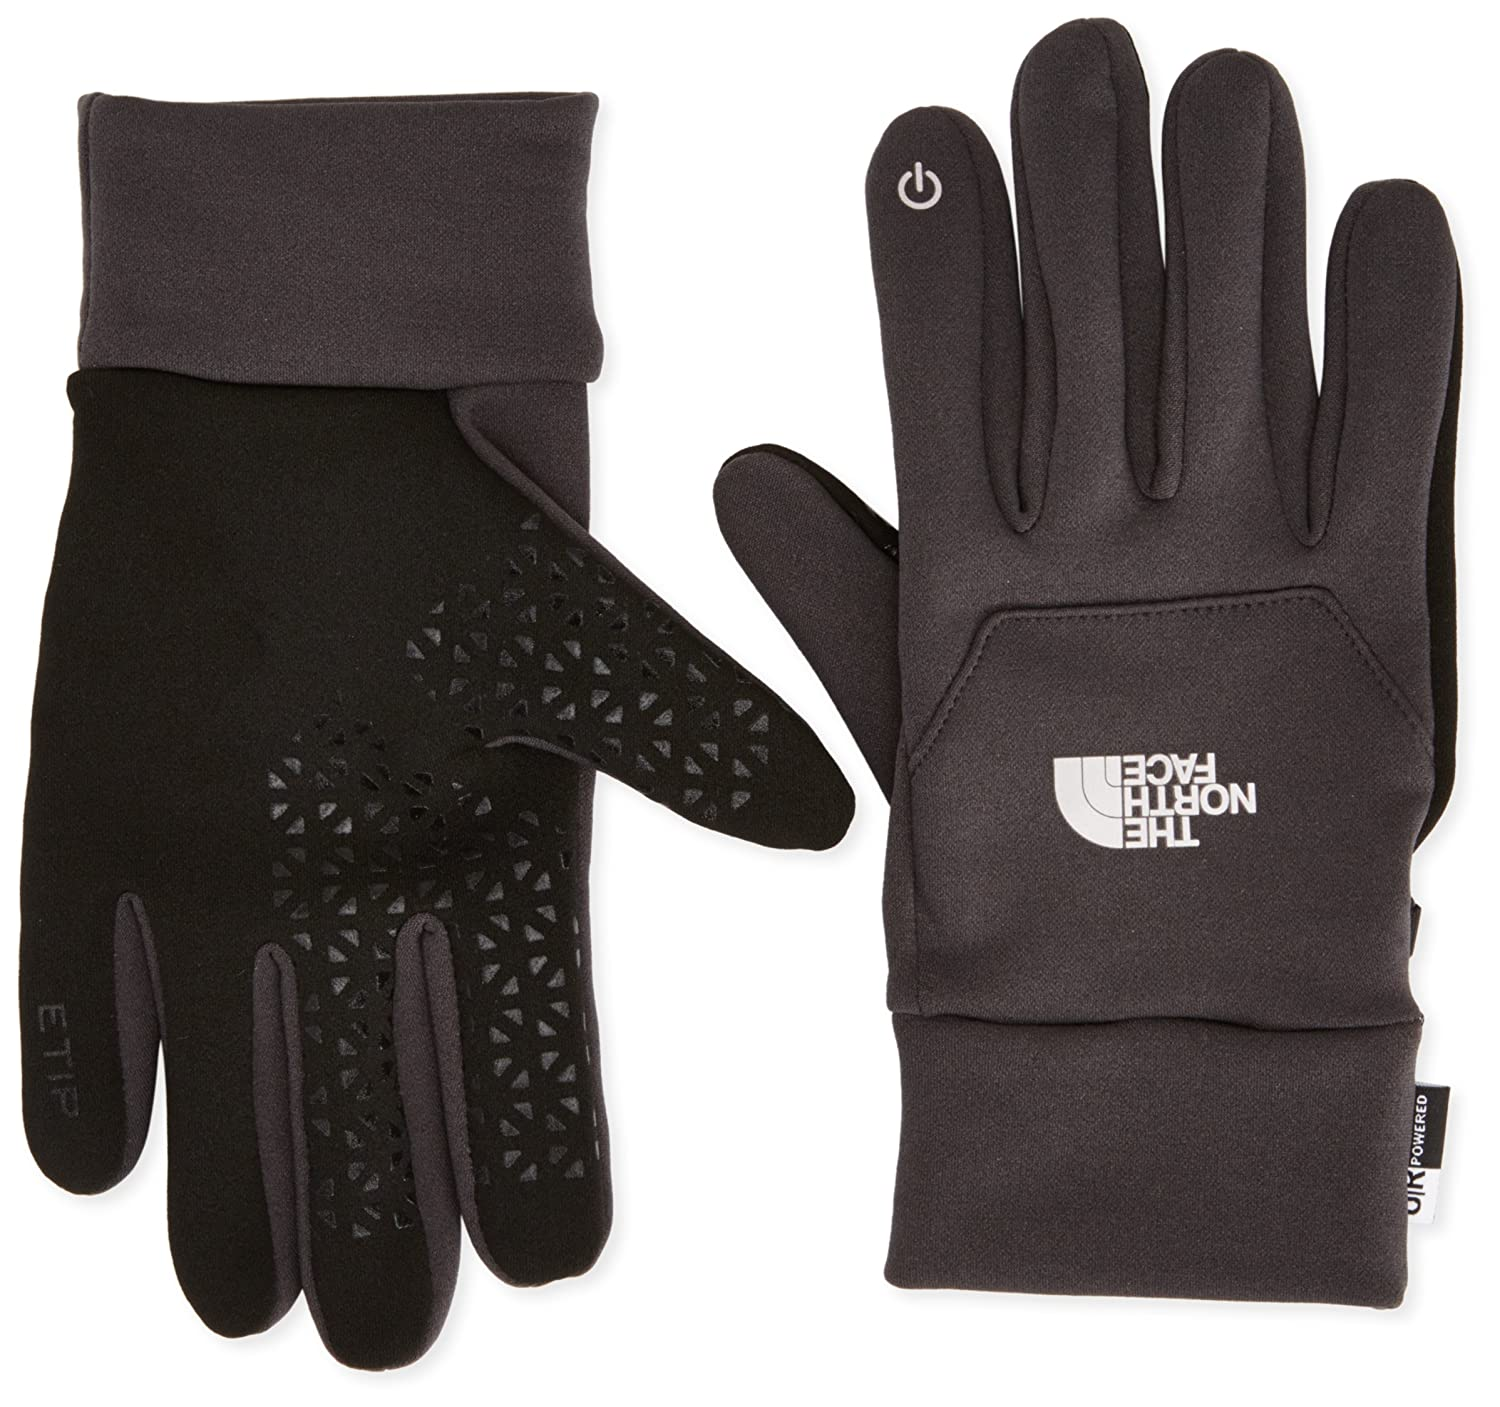 Amazon.com: The North Face Unisex Etip Glove: THE NORTH FACE: Sports &  Outdoors